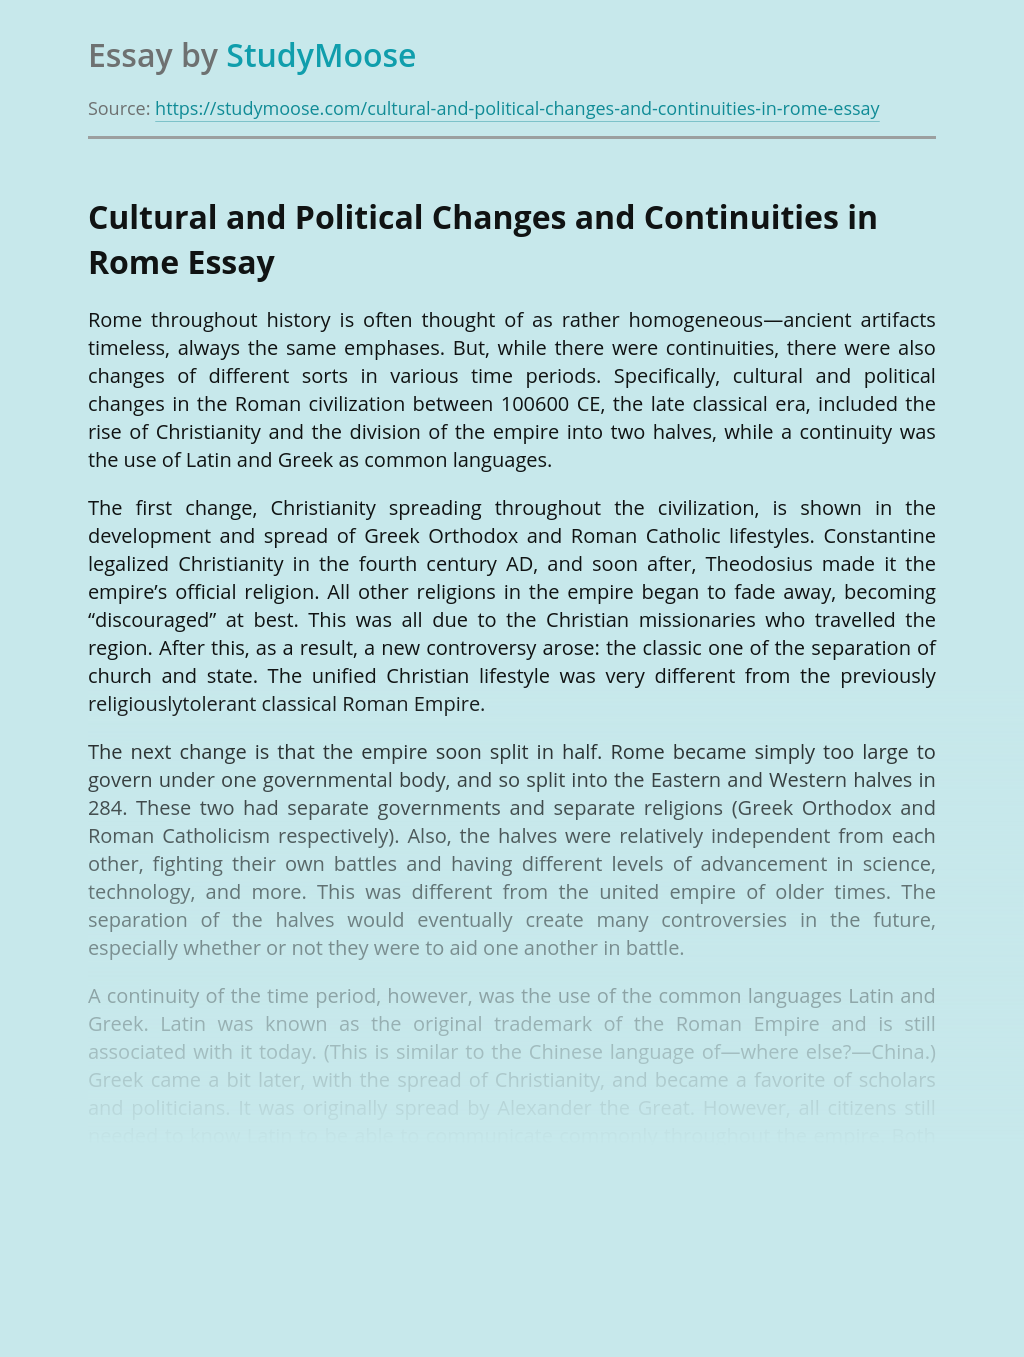 Cultural and Political Changes and Continuities in Rome